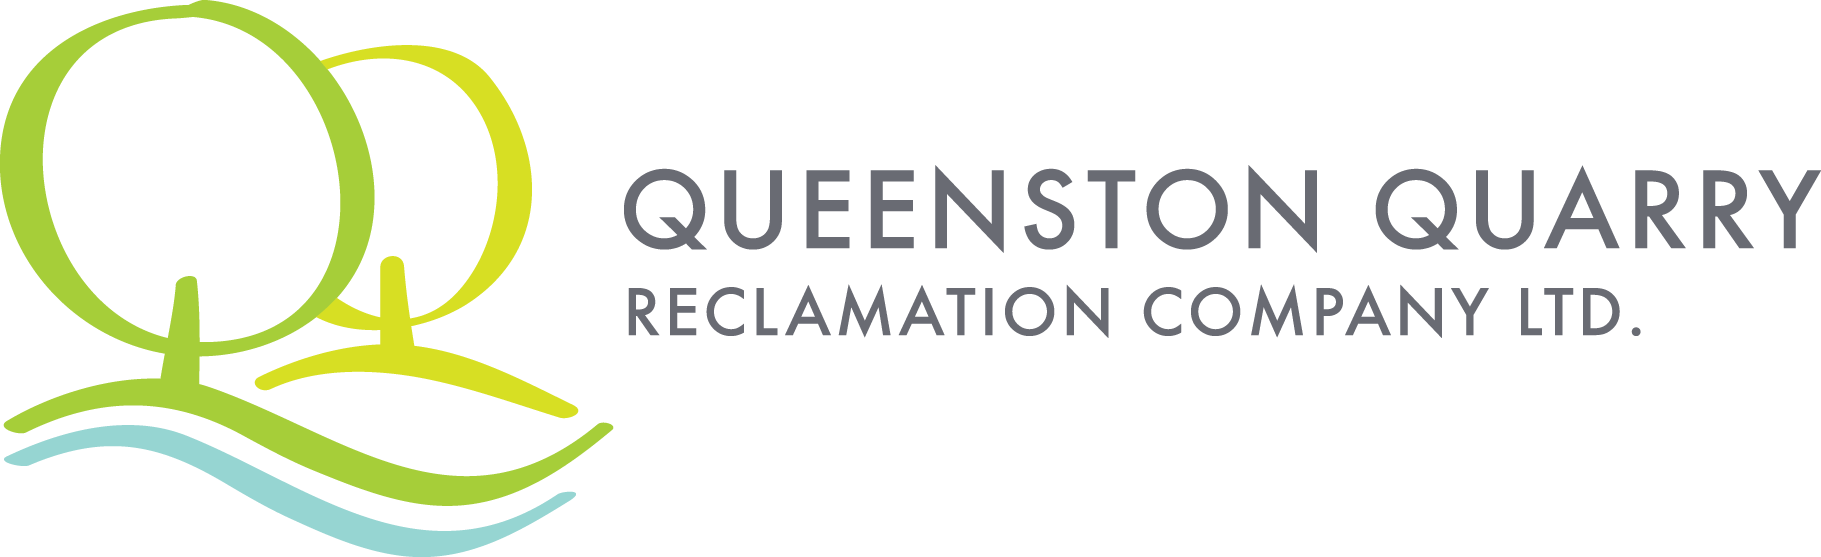 Queenston Quarry